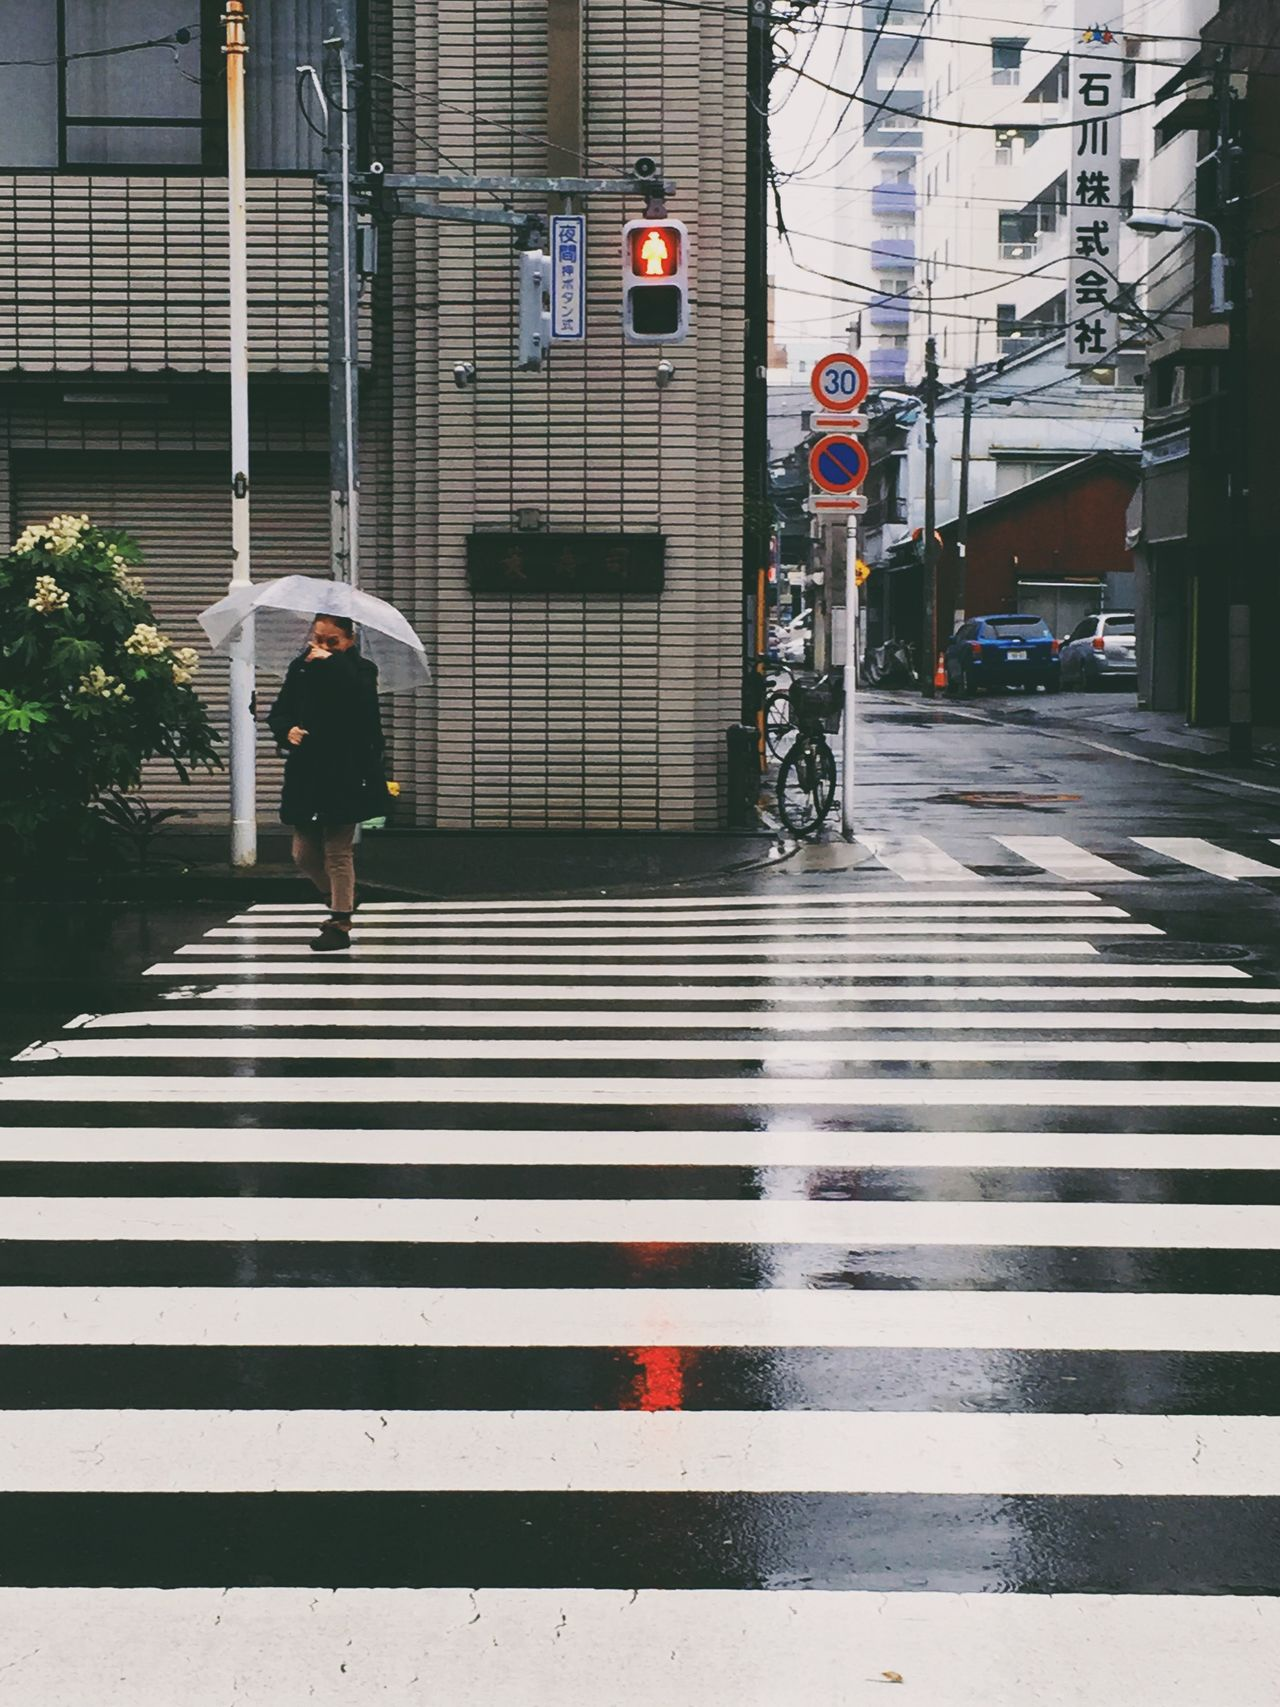 Tokyo Days RainyDays Traffic Signal The Street Photographer - 2015 EyeEm Awards